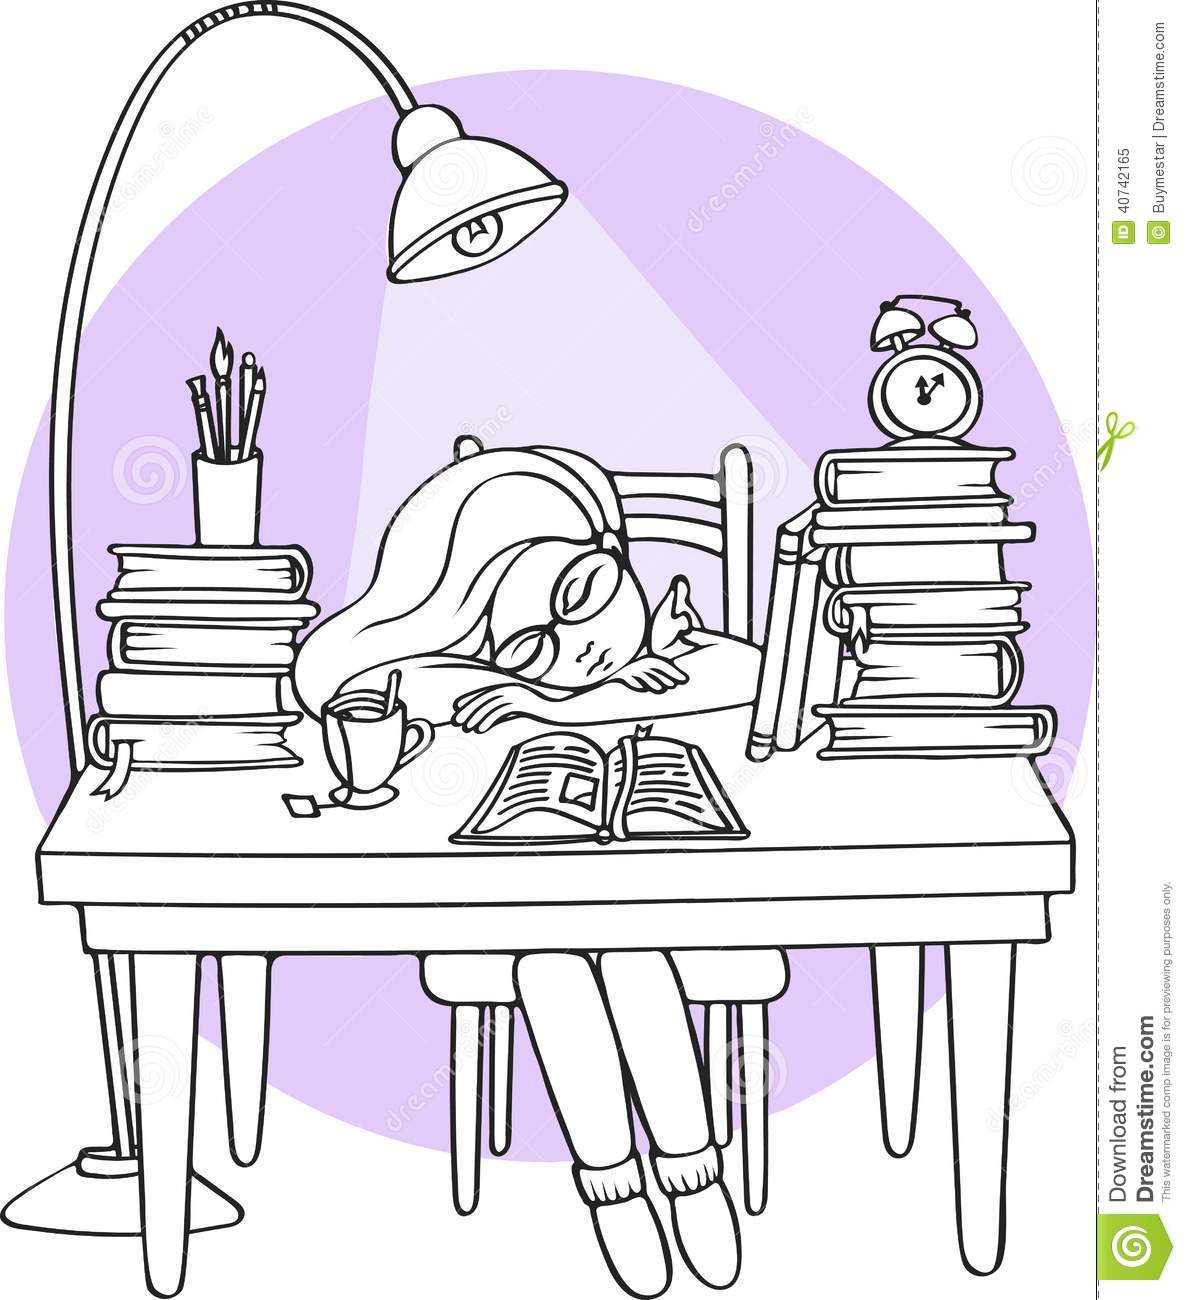 Smart girl studying at night sleeping on the desk with books vector illustration